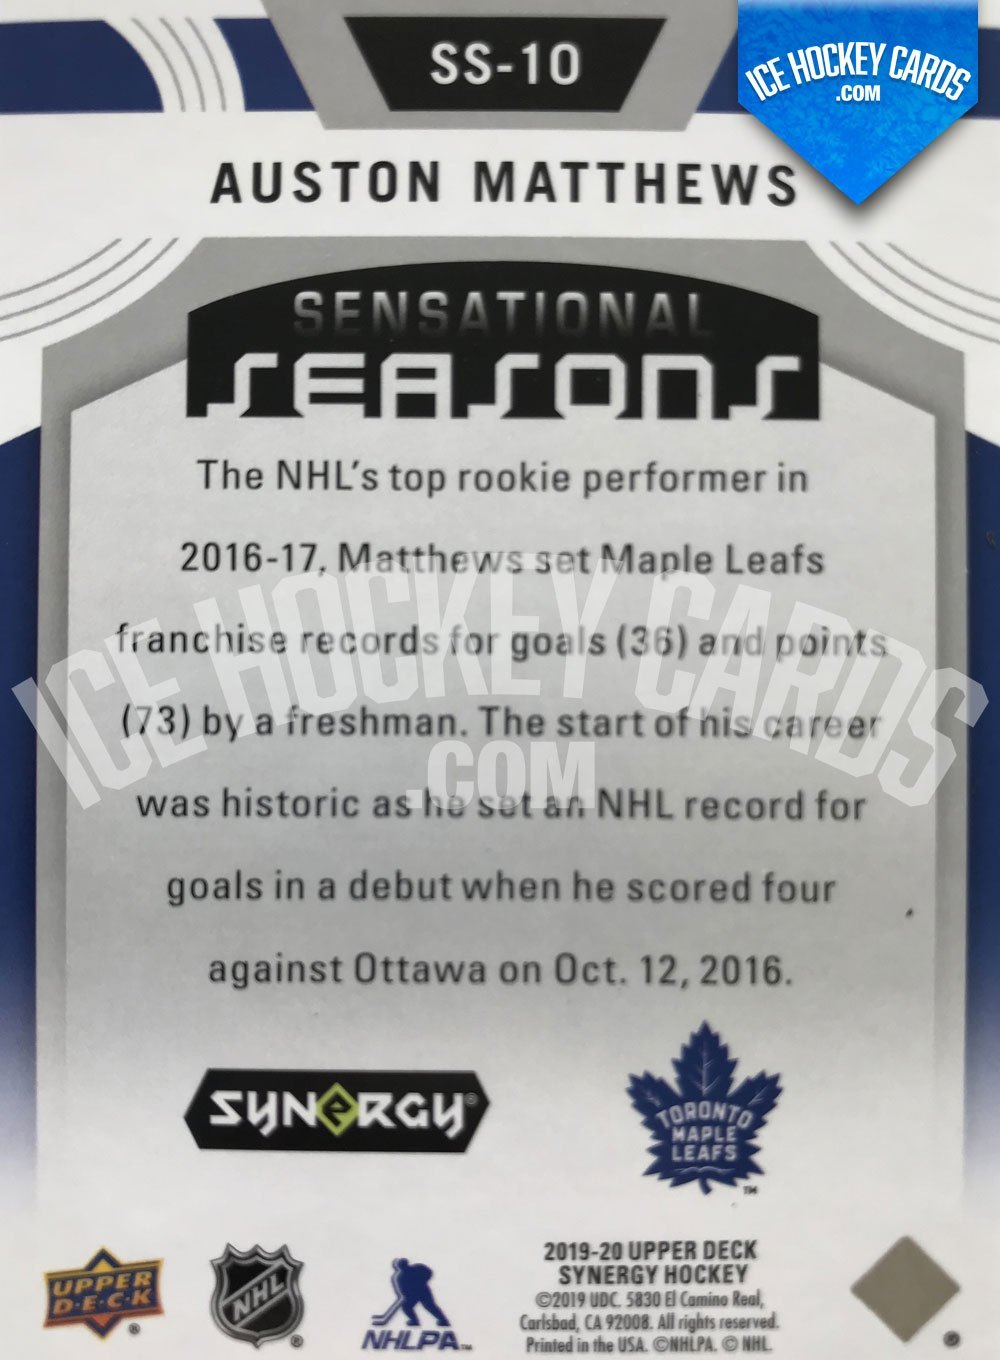 Upper Deck - Synergy 19-20 - Auston Matthews Sensational Seasons 2016-17 back